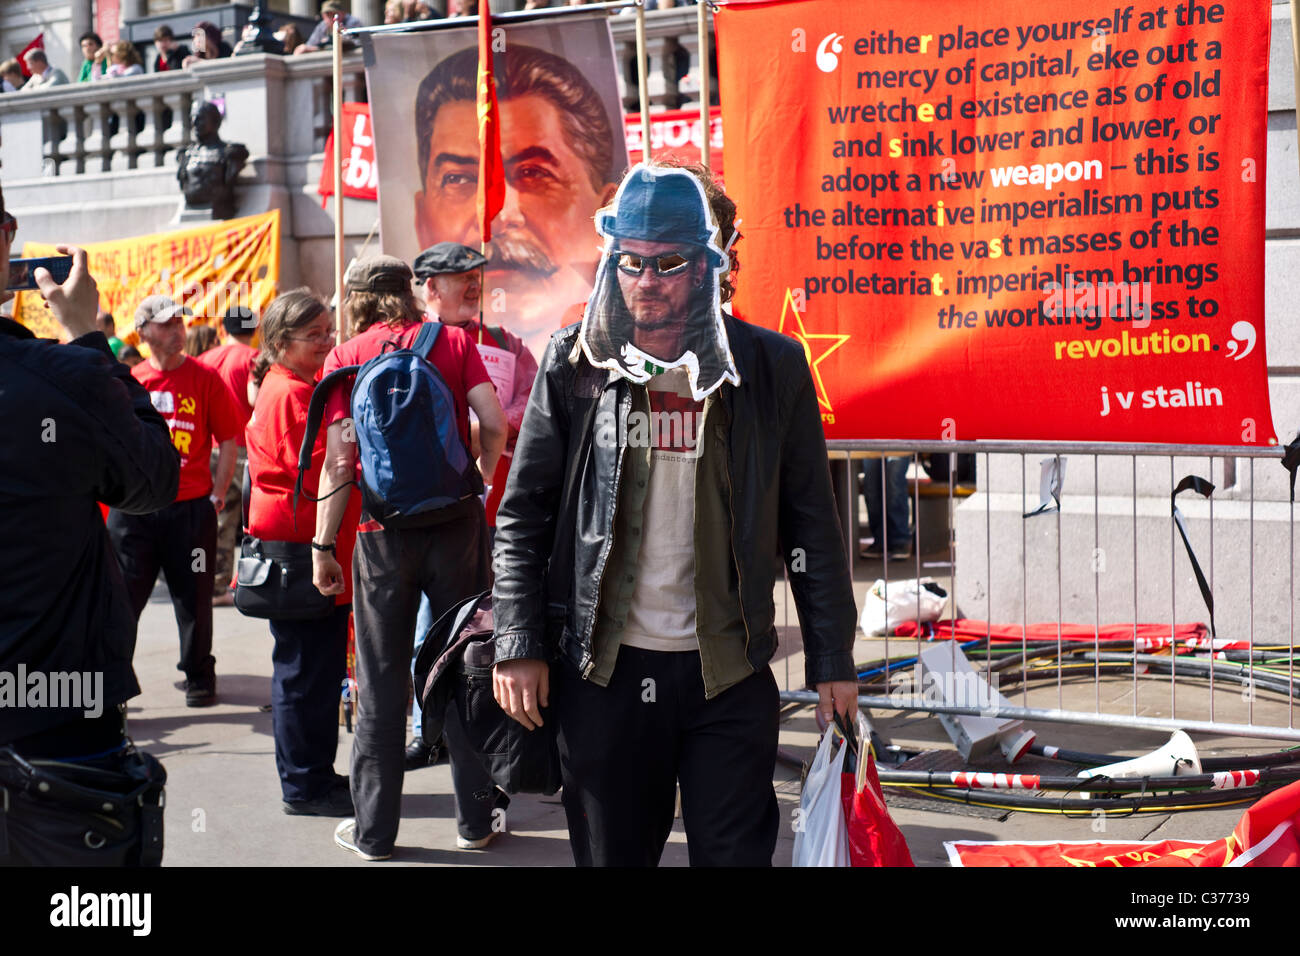 Man in Mark Kennedy mask at Mayday gathering in Trafalgar Square - Stock Image